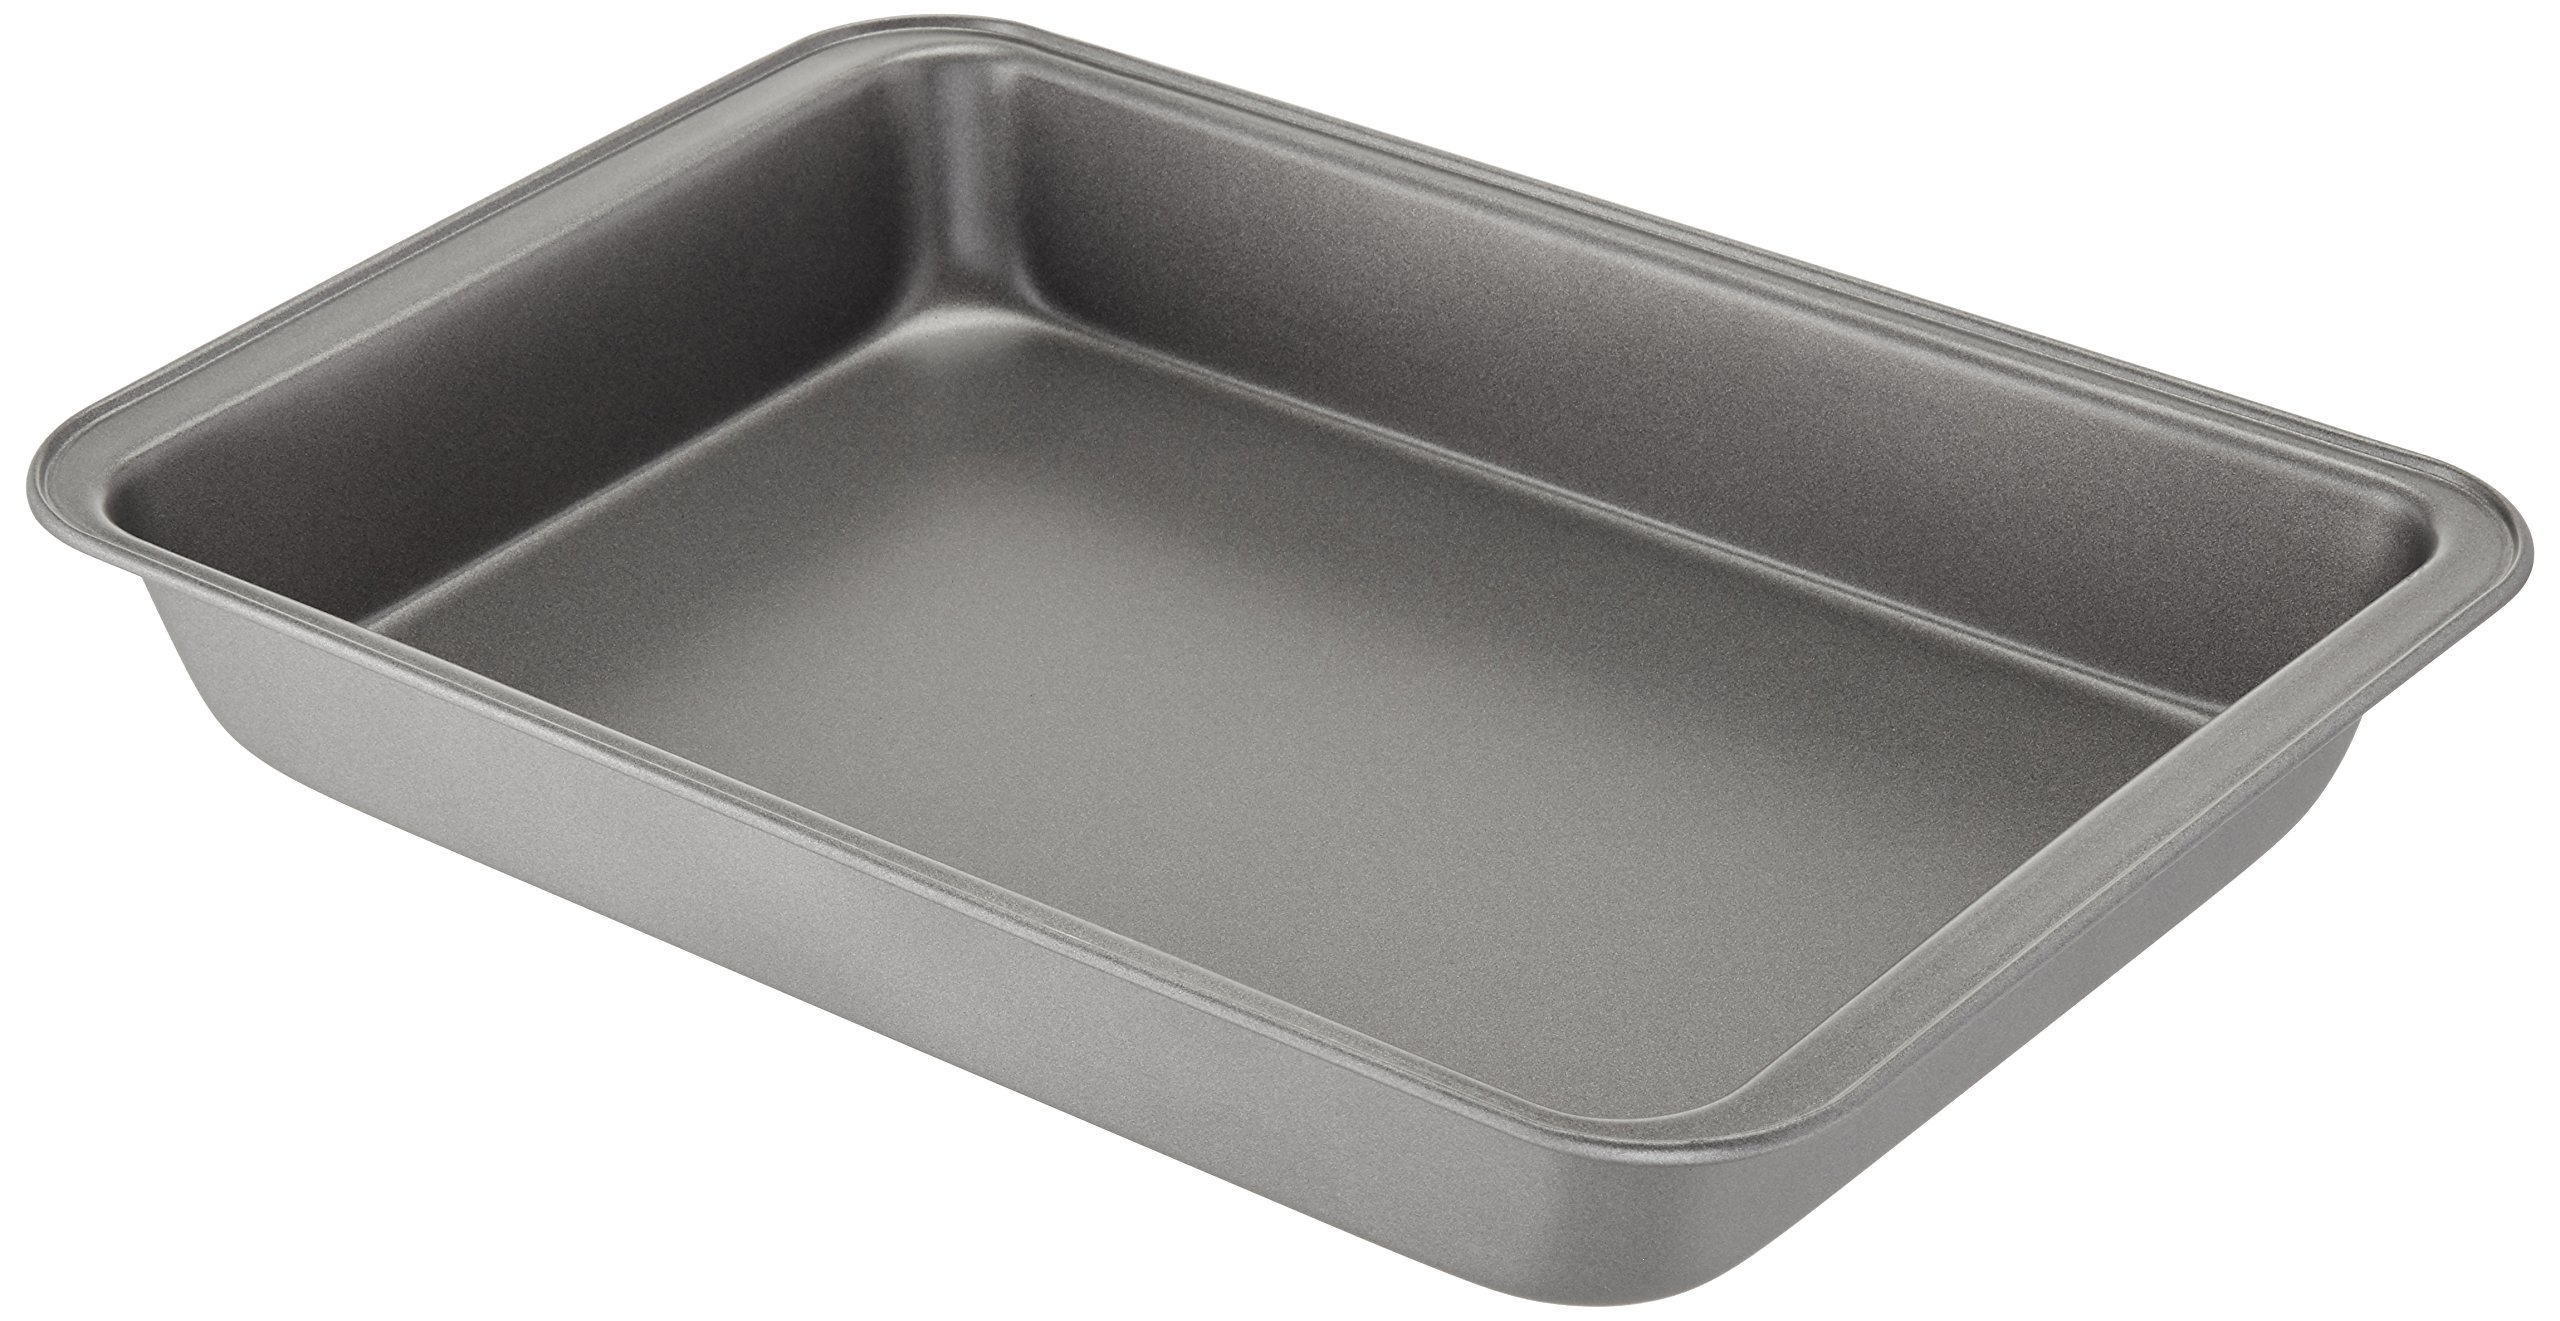 AmazonBasics 6-Piece Nonstick Bakeware Set by AmazonBasics (Image #5)